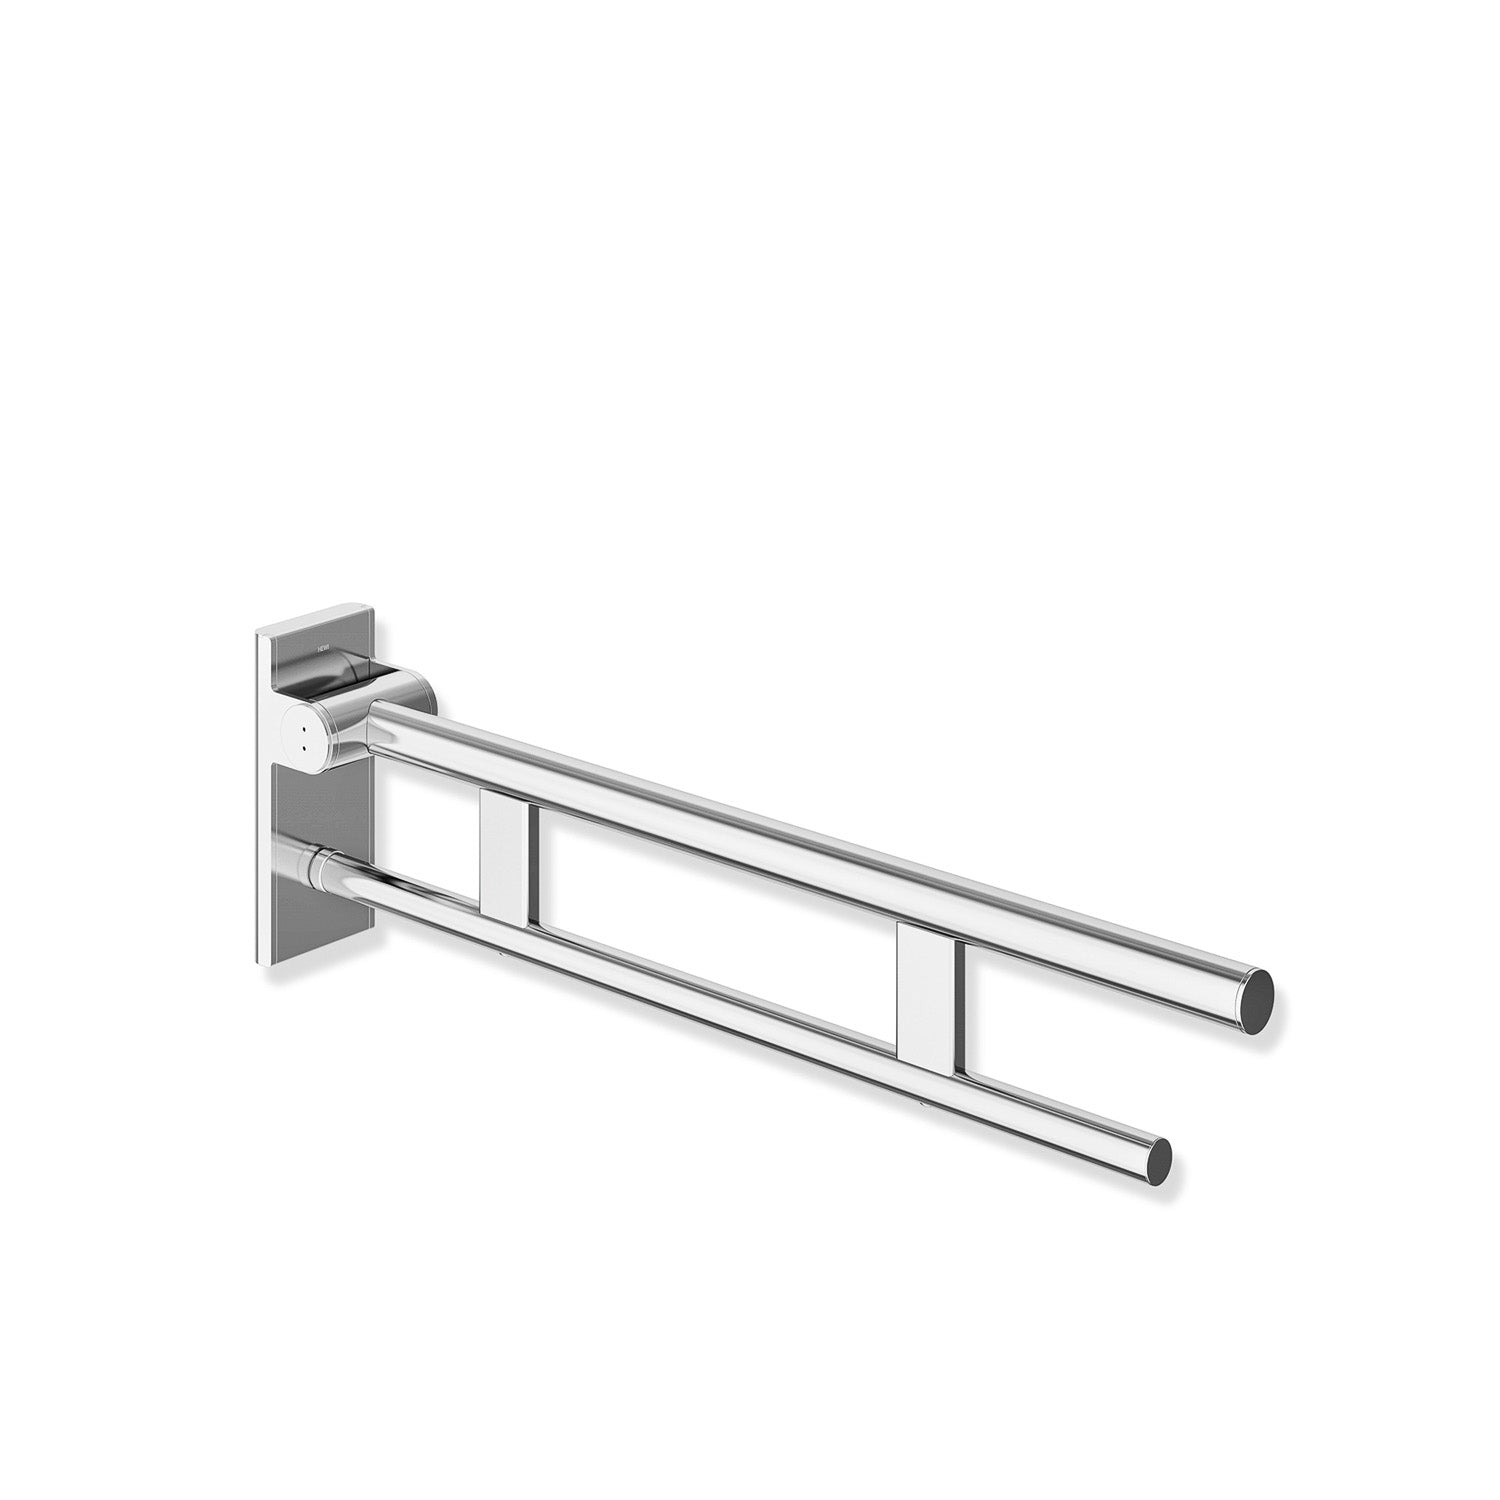 600mm Freestyle Hinged Grab Rail with a chrome finish on a white background